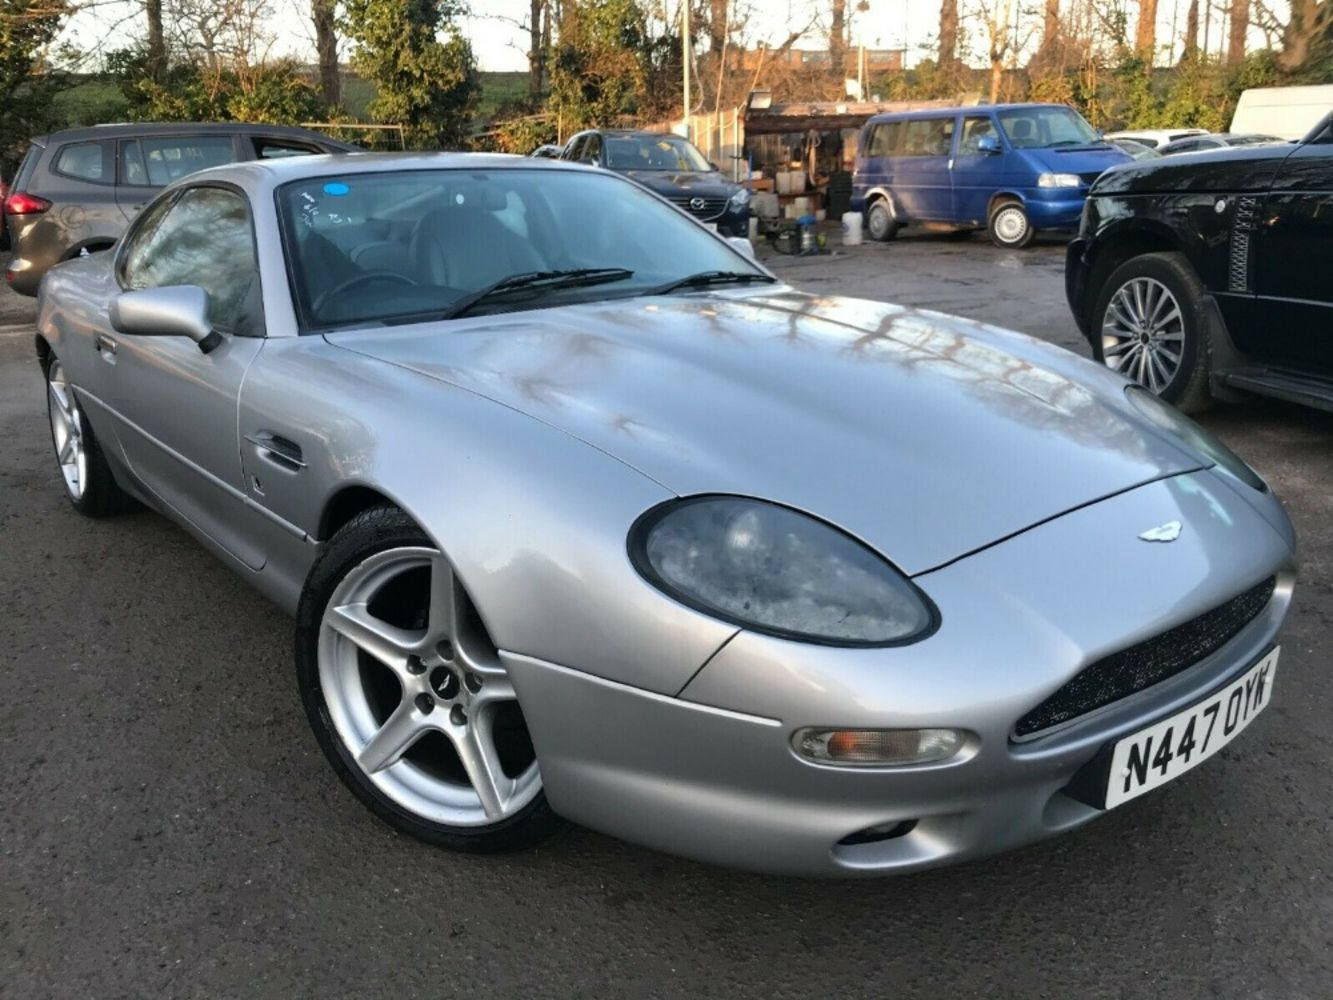 Apple Iphones, Ipads, various PPE and Cars including an Aston Martin DB7